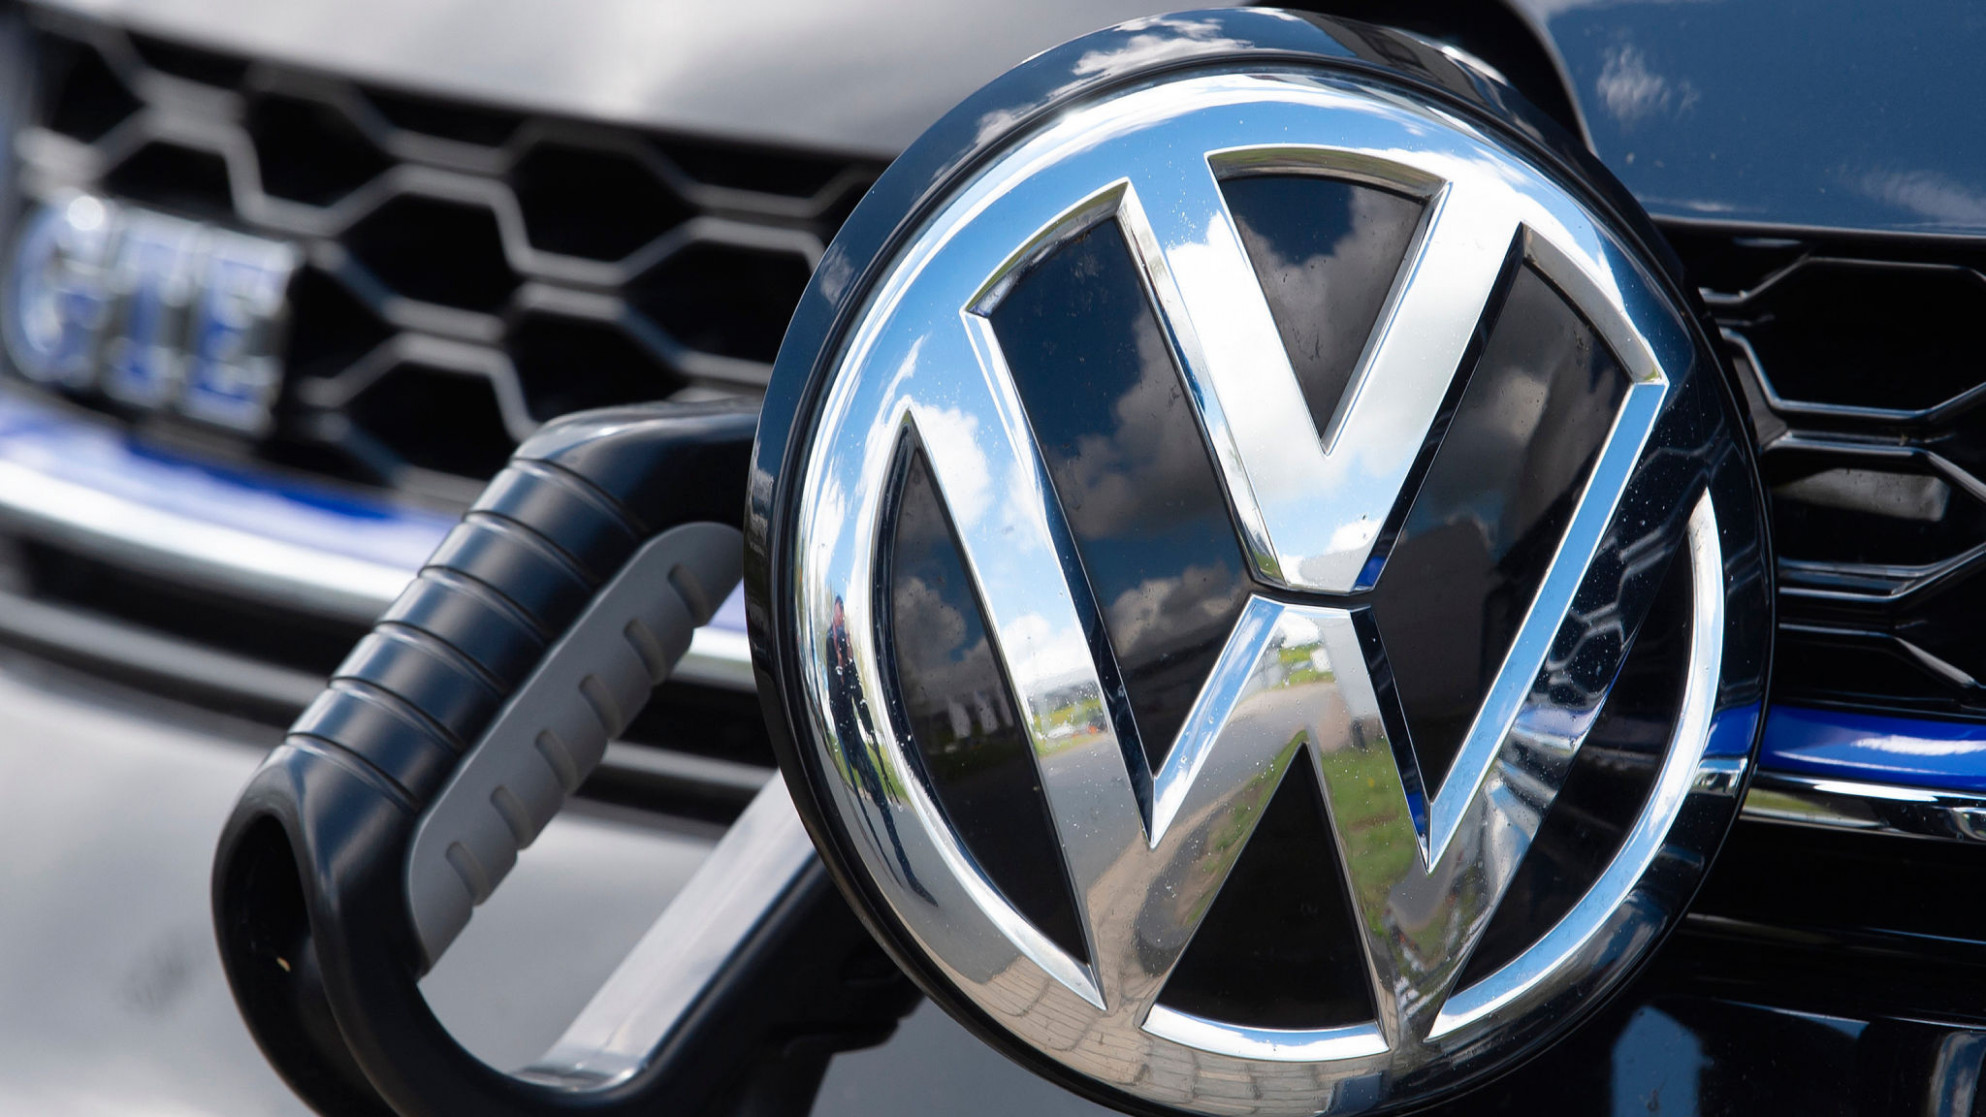 VW offers direct payouts to sidestep emissions lawsuit | Financial ..